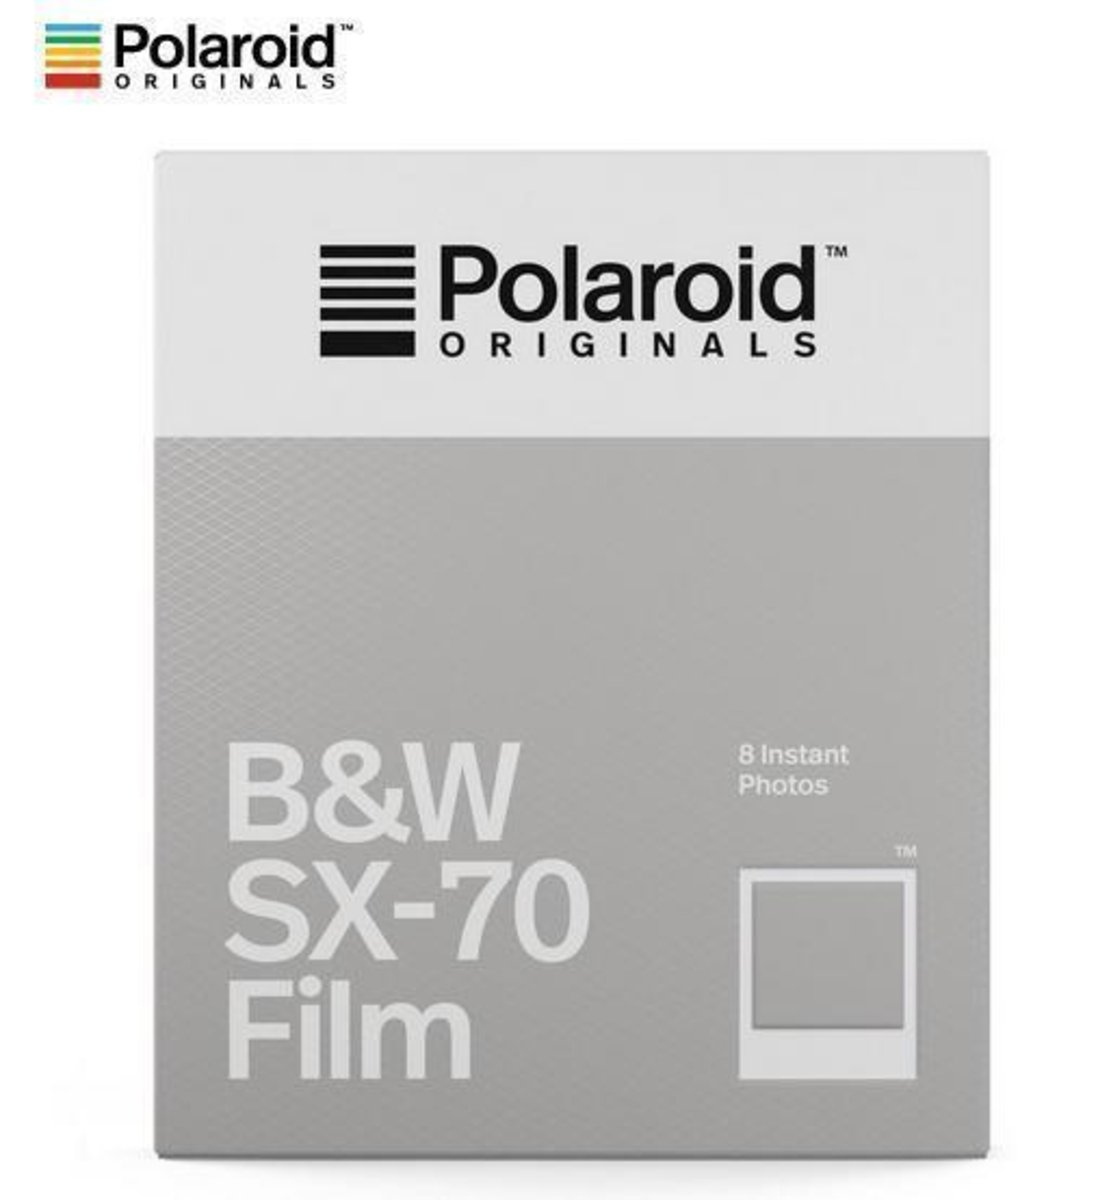 B&W Instant Film for SX-70